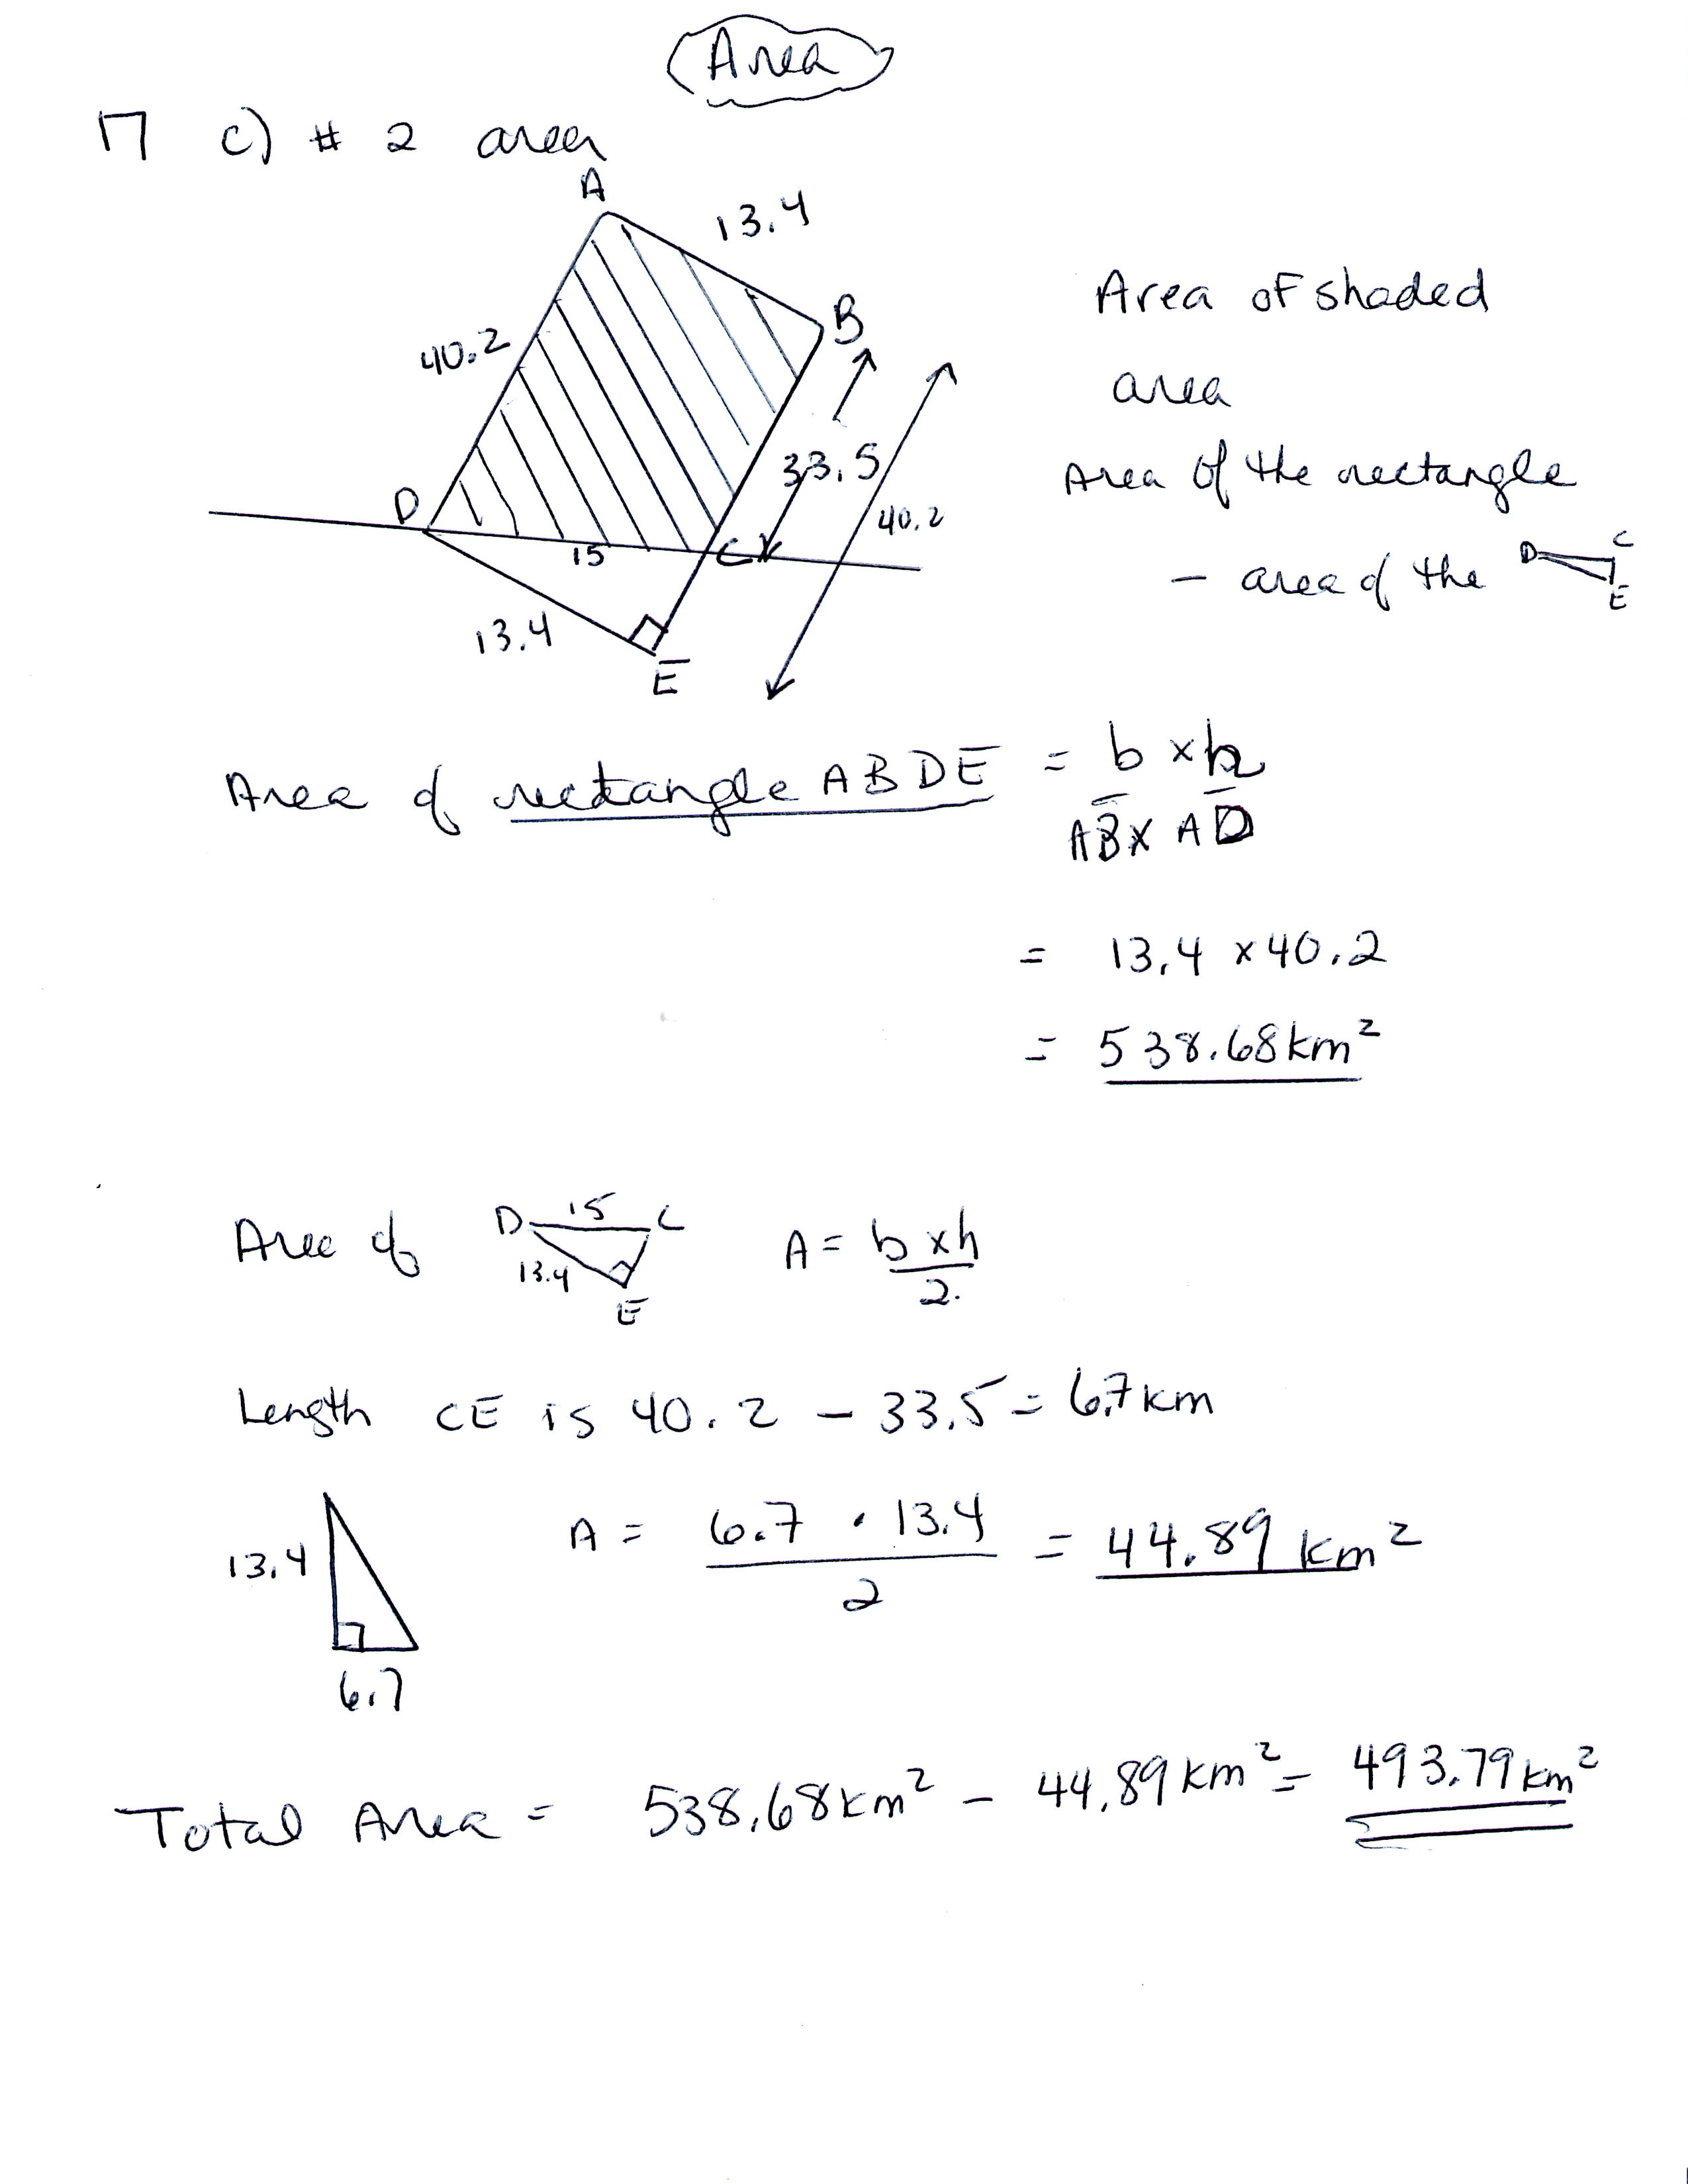 holt modern chemistry chapter 12 review answers.